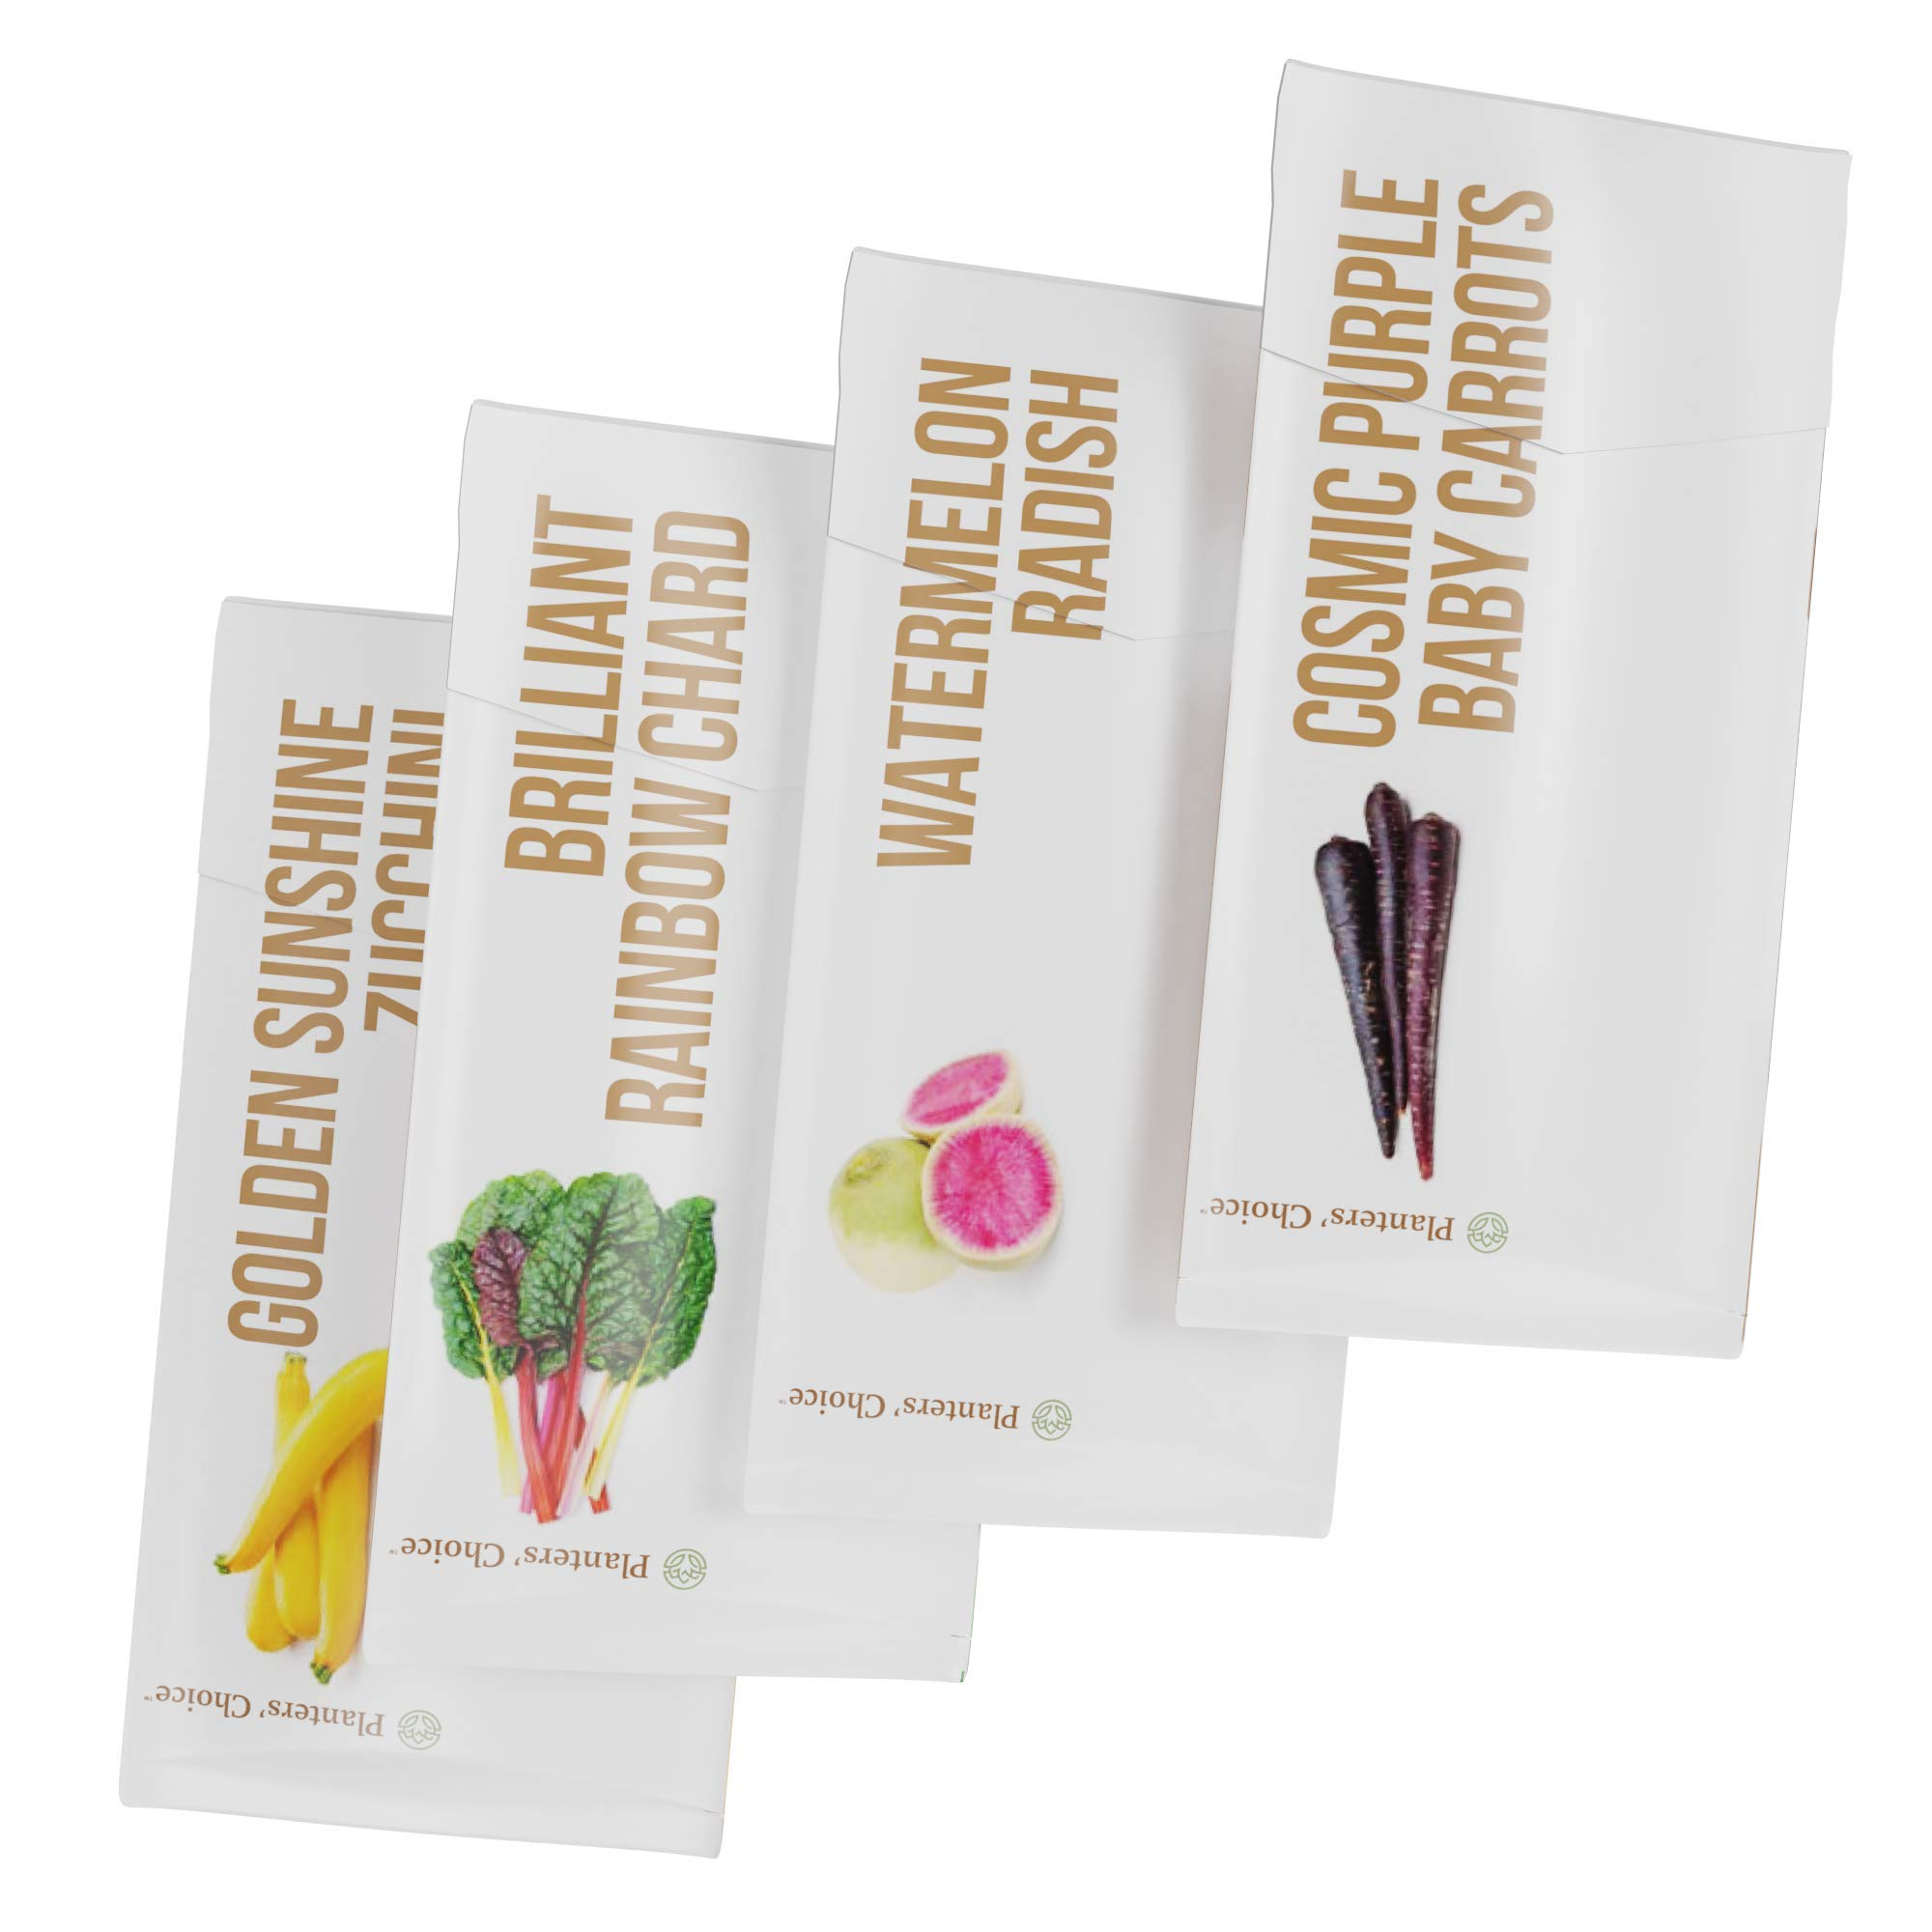 Exotic Veggies Growing Kit - Everything Included to Easily Grow 4 Unique Vegetables from Seed - Carrots, Chard, Radish, Zucchini + Moisture Meter by Planters' Choice (Image #9)